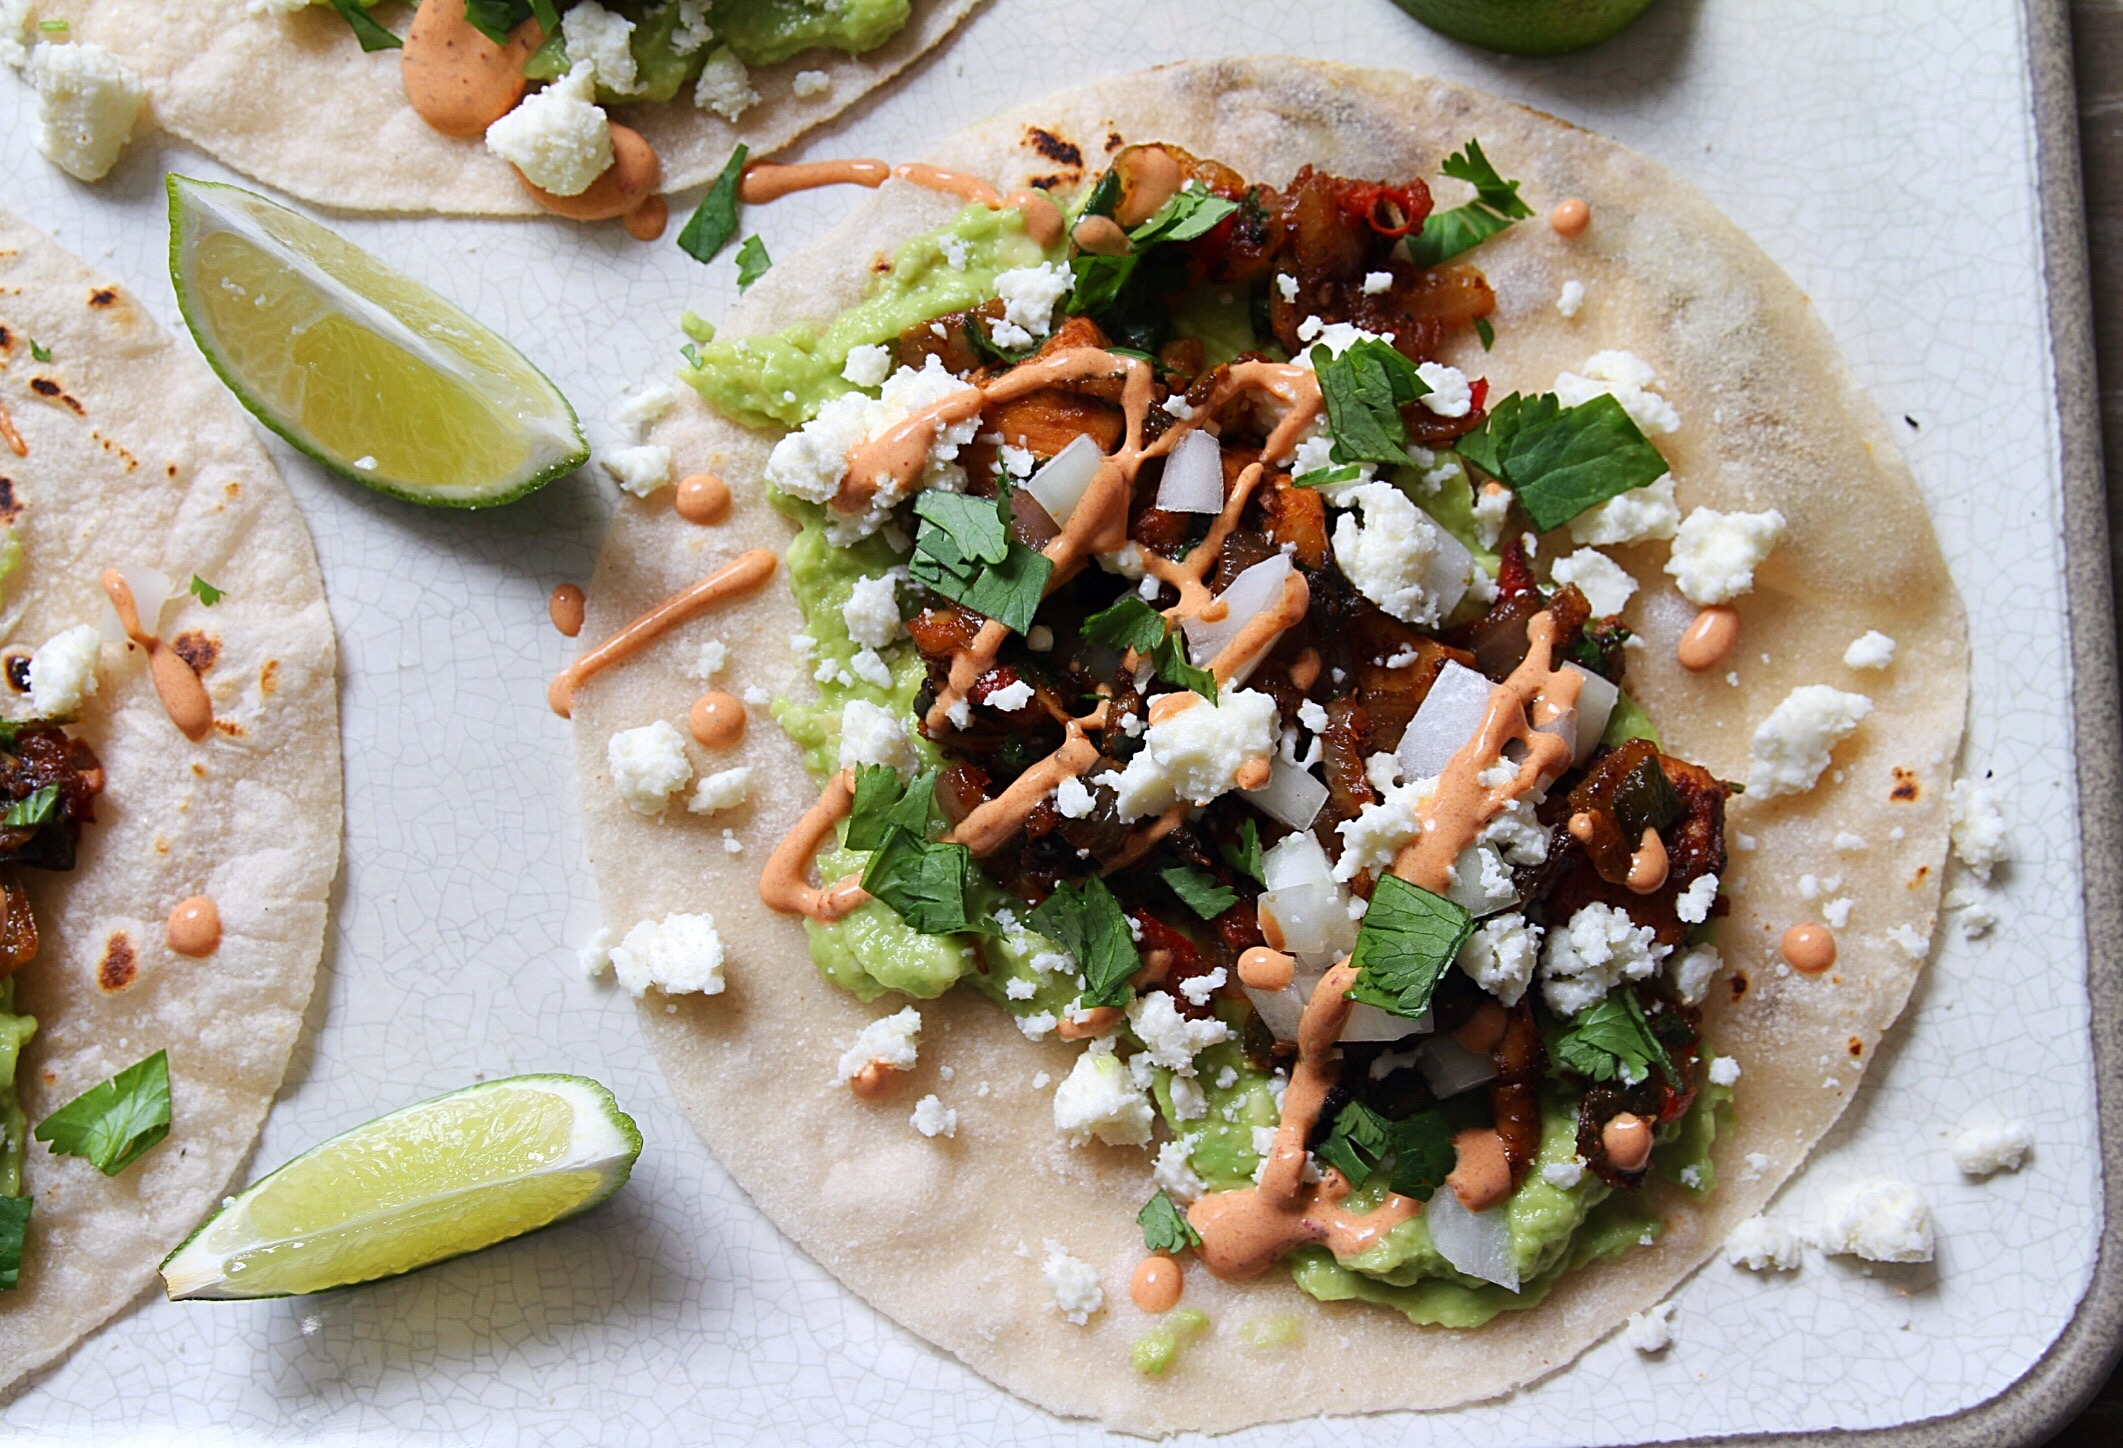 Spicy chicken tacos with guacamole and queso fresco. Lime wedge garnish.